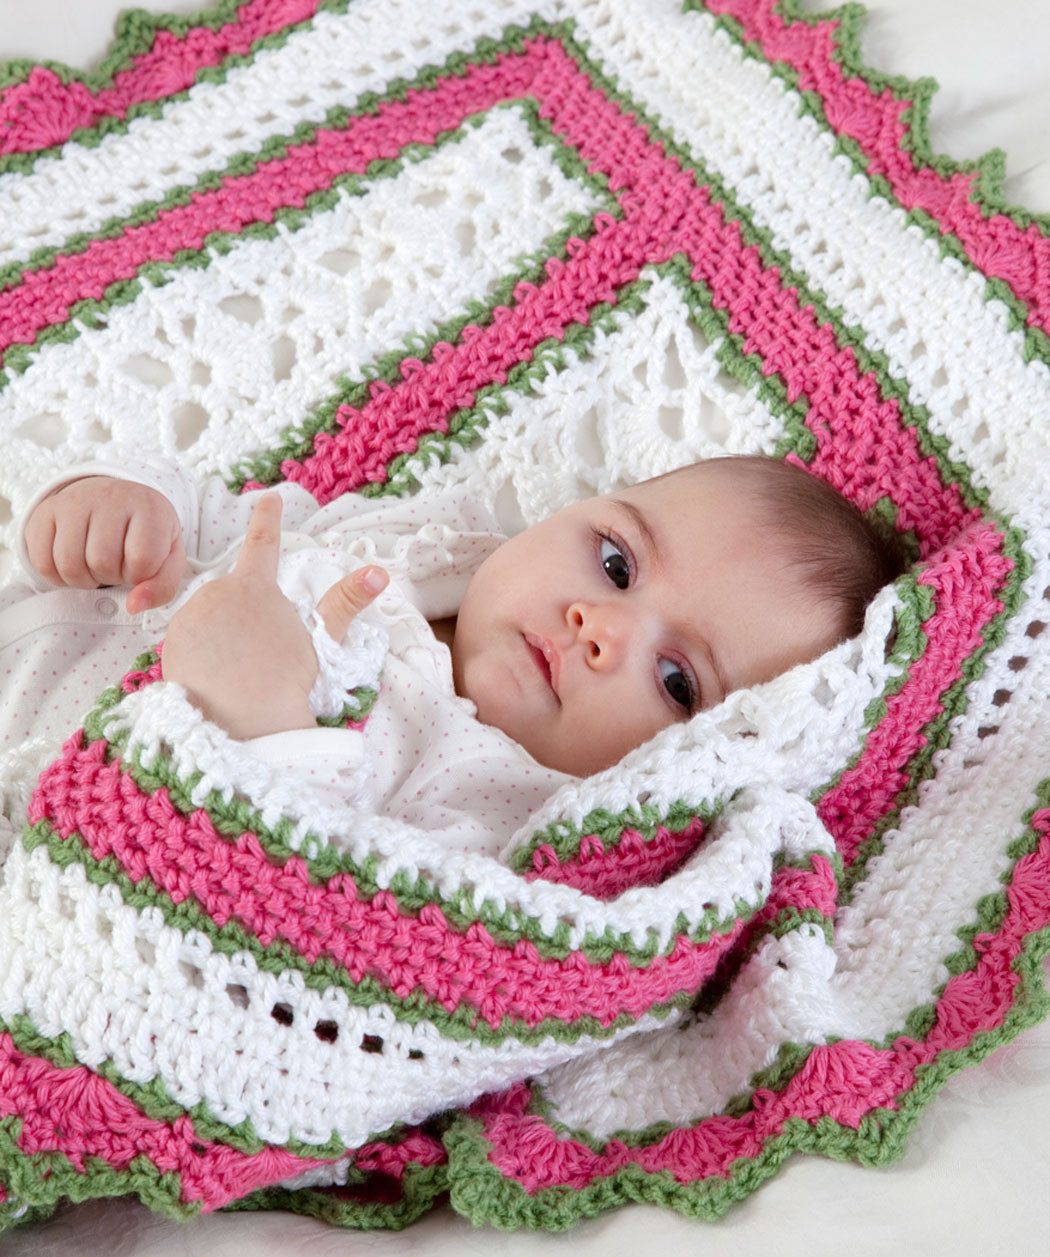 Newborn Crochet Patterns New 10 Beautiful Baby Blanket Free Patterns Of Incredible 41 Ideas Newborn Crochet Patterns